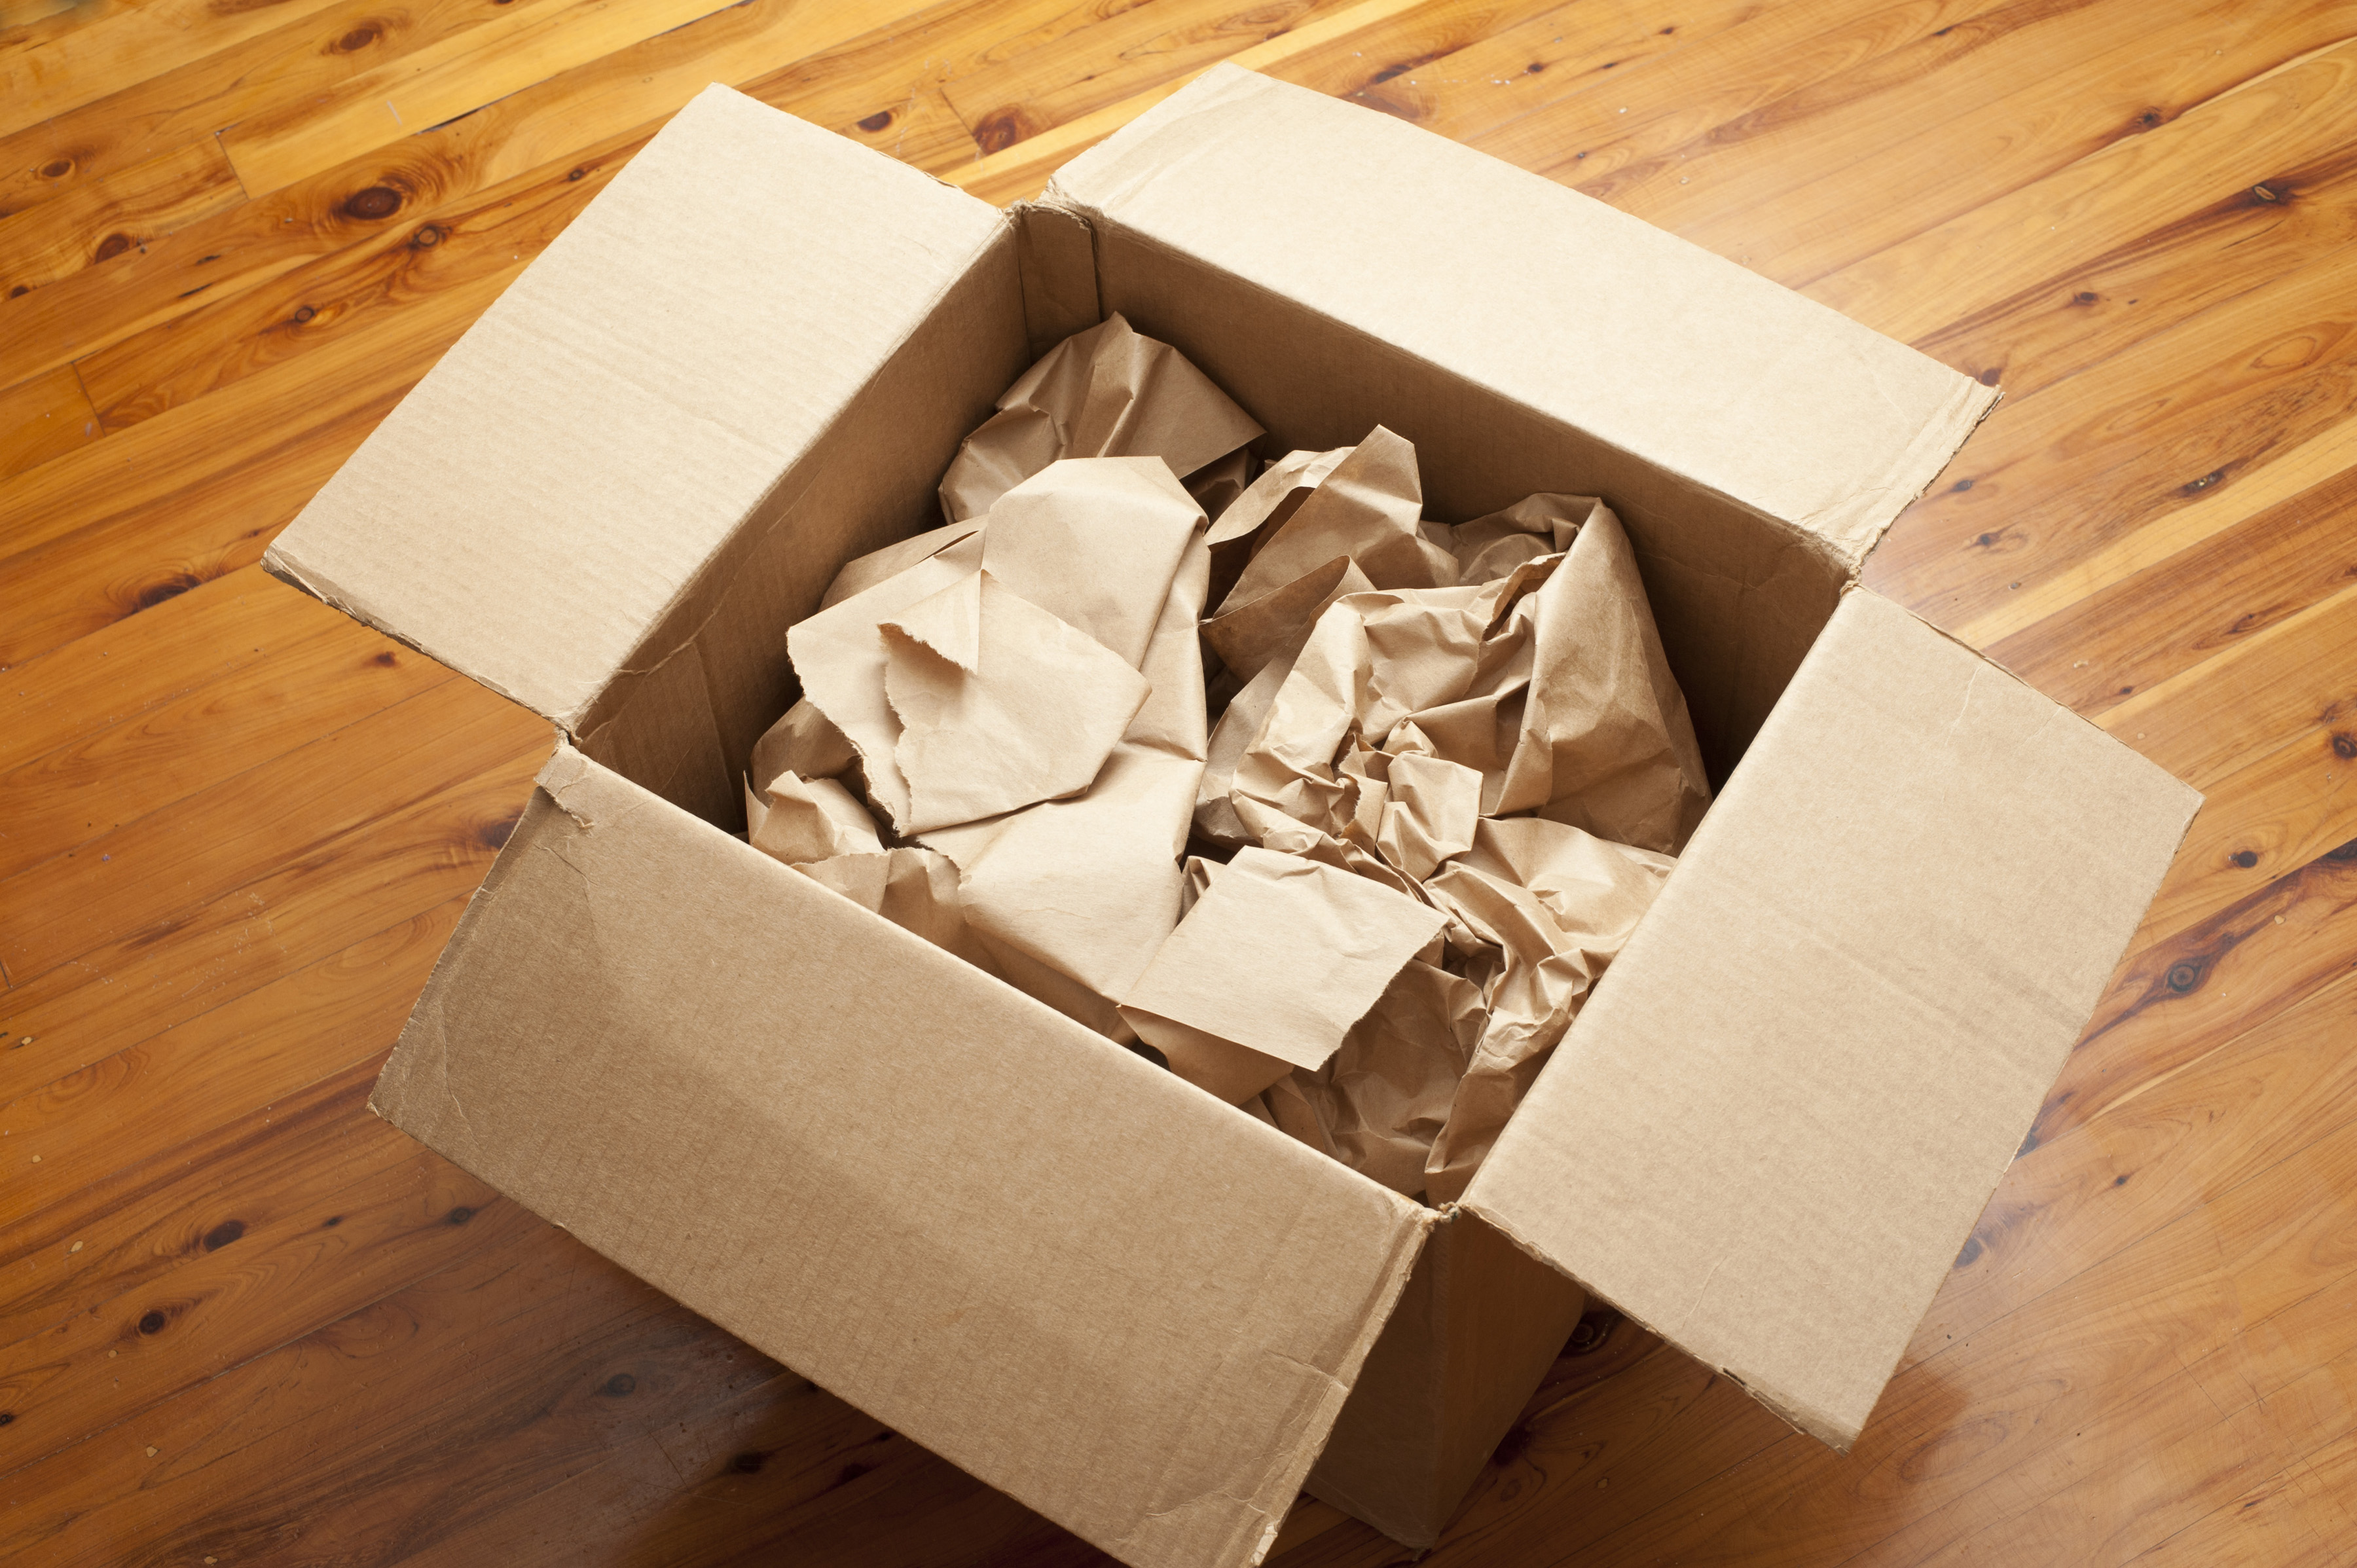 Open brown cardboard packing box with crumpled brown paper for packaging inside on a wooden floor, high angle view